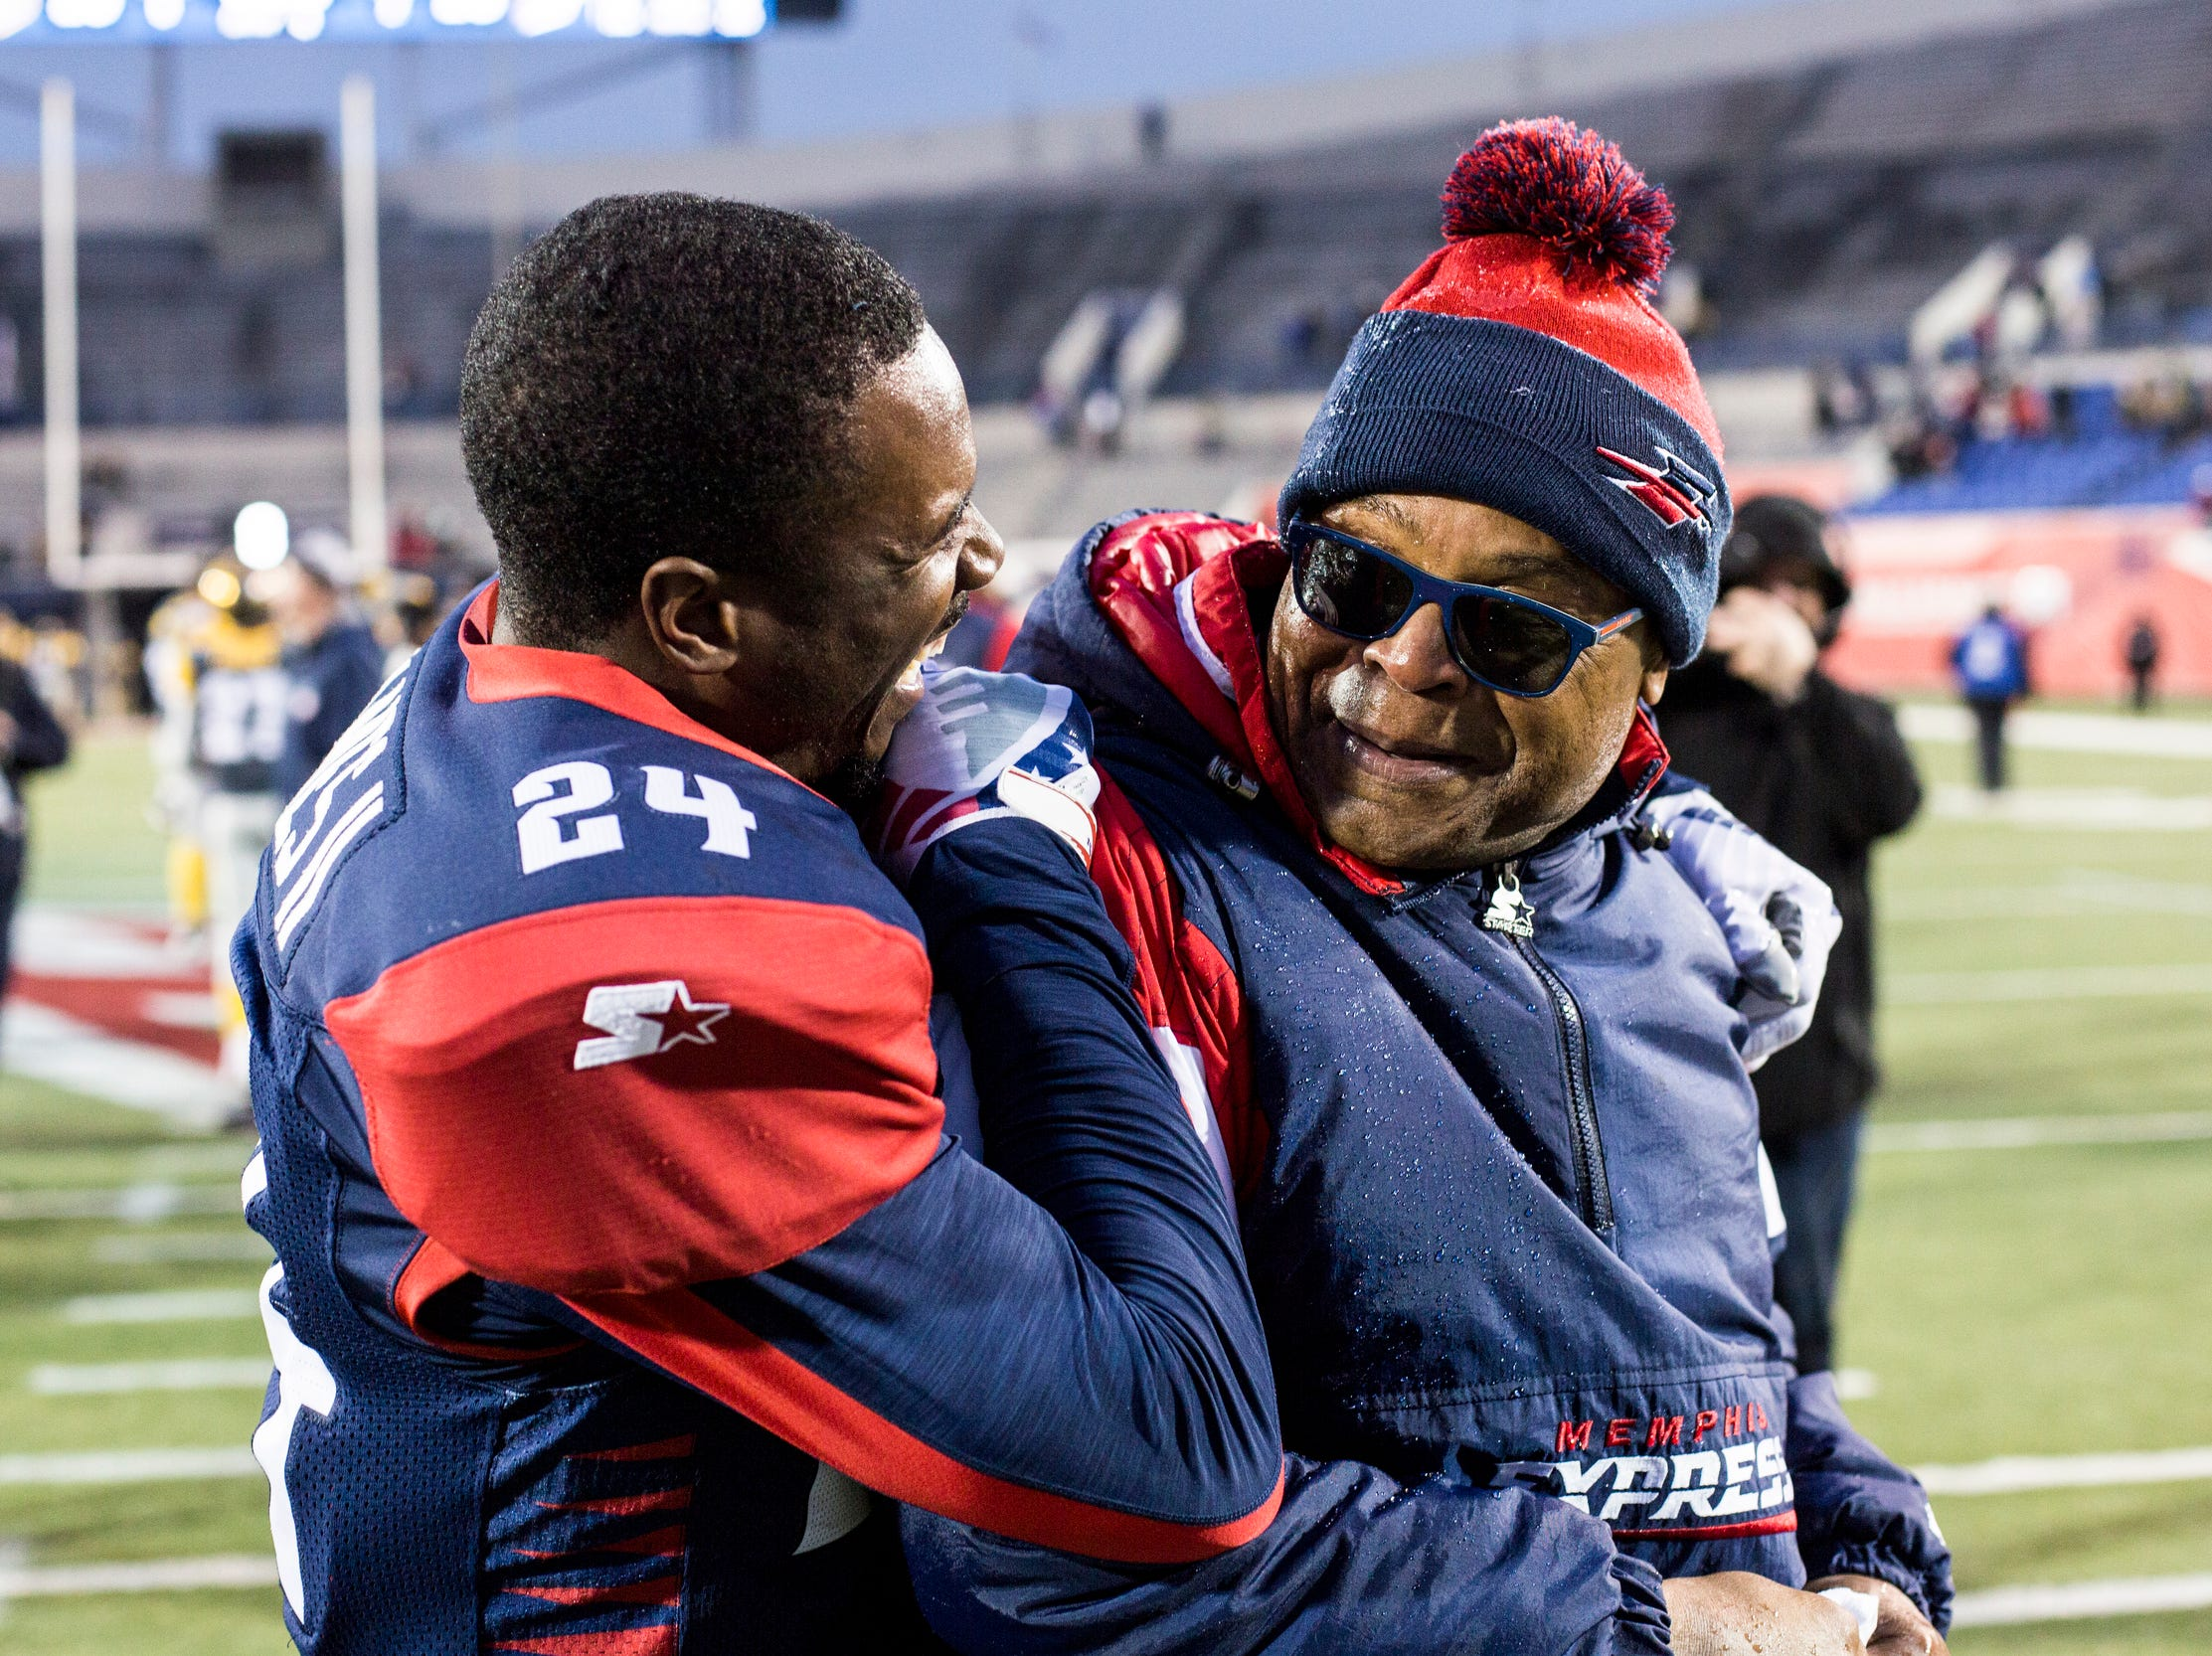 March 02, 2019 - Charles James II, left, and Memphis Express head coach Mike Singletary celebrate after winning Saturday's game against the San Diego Fleet.